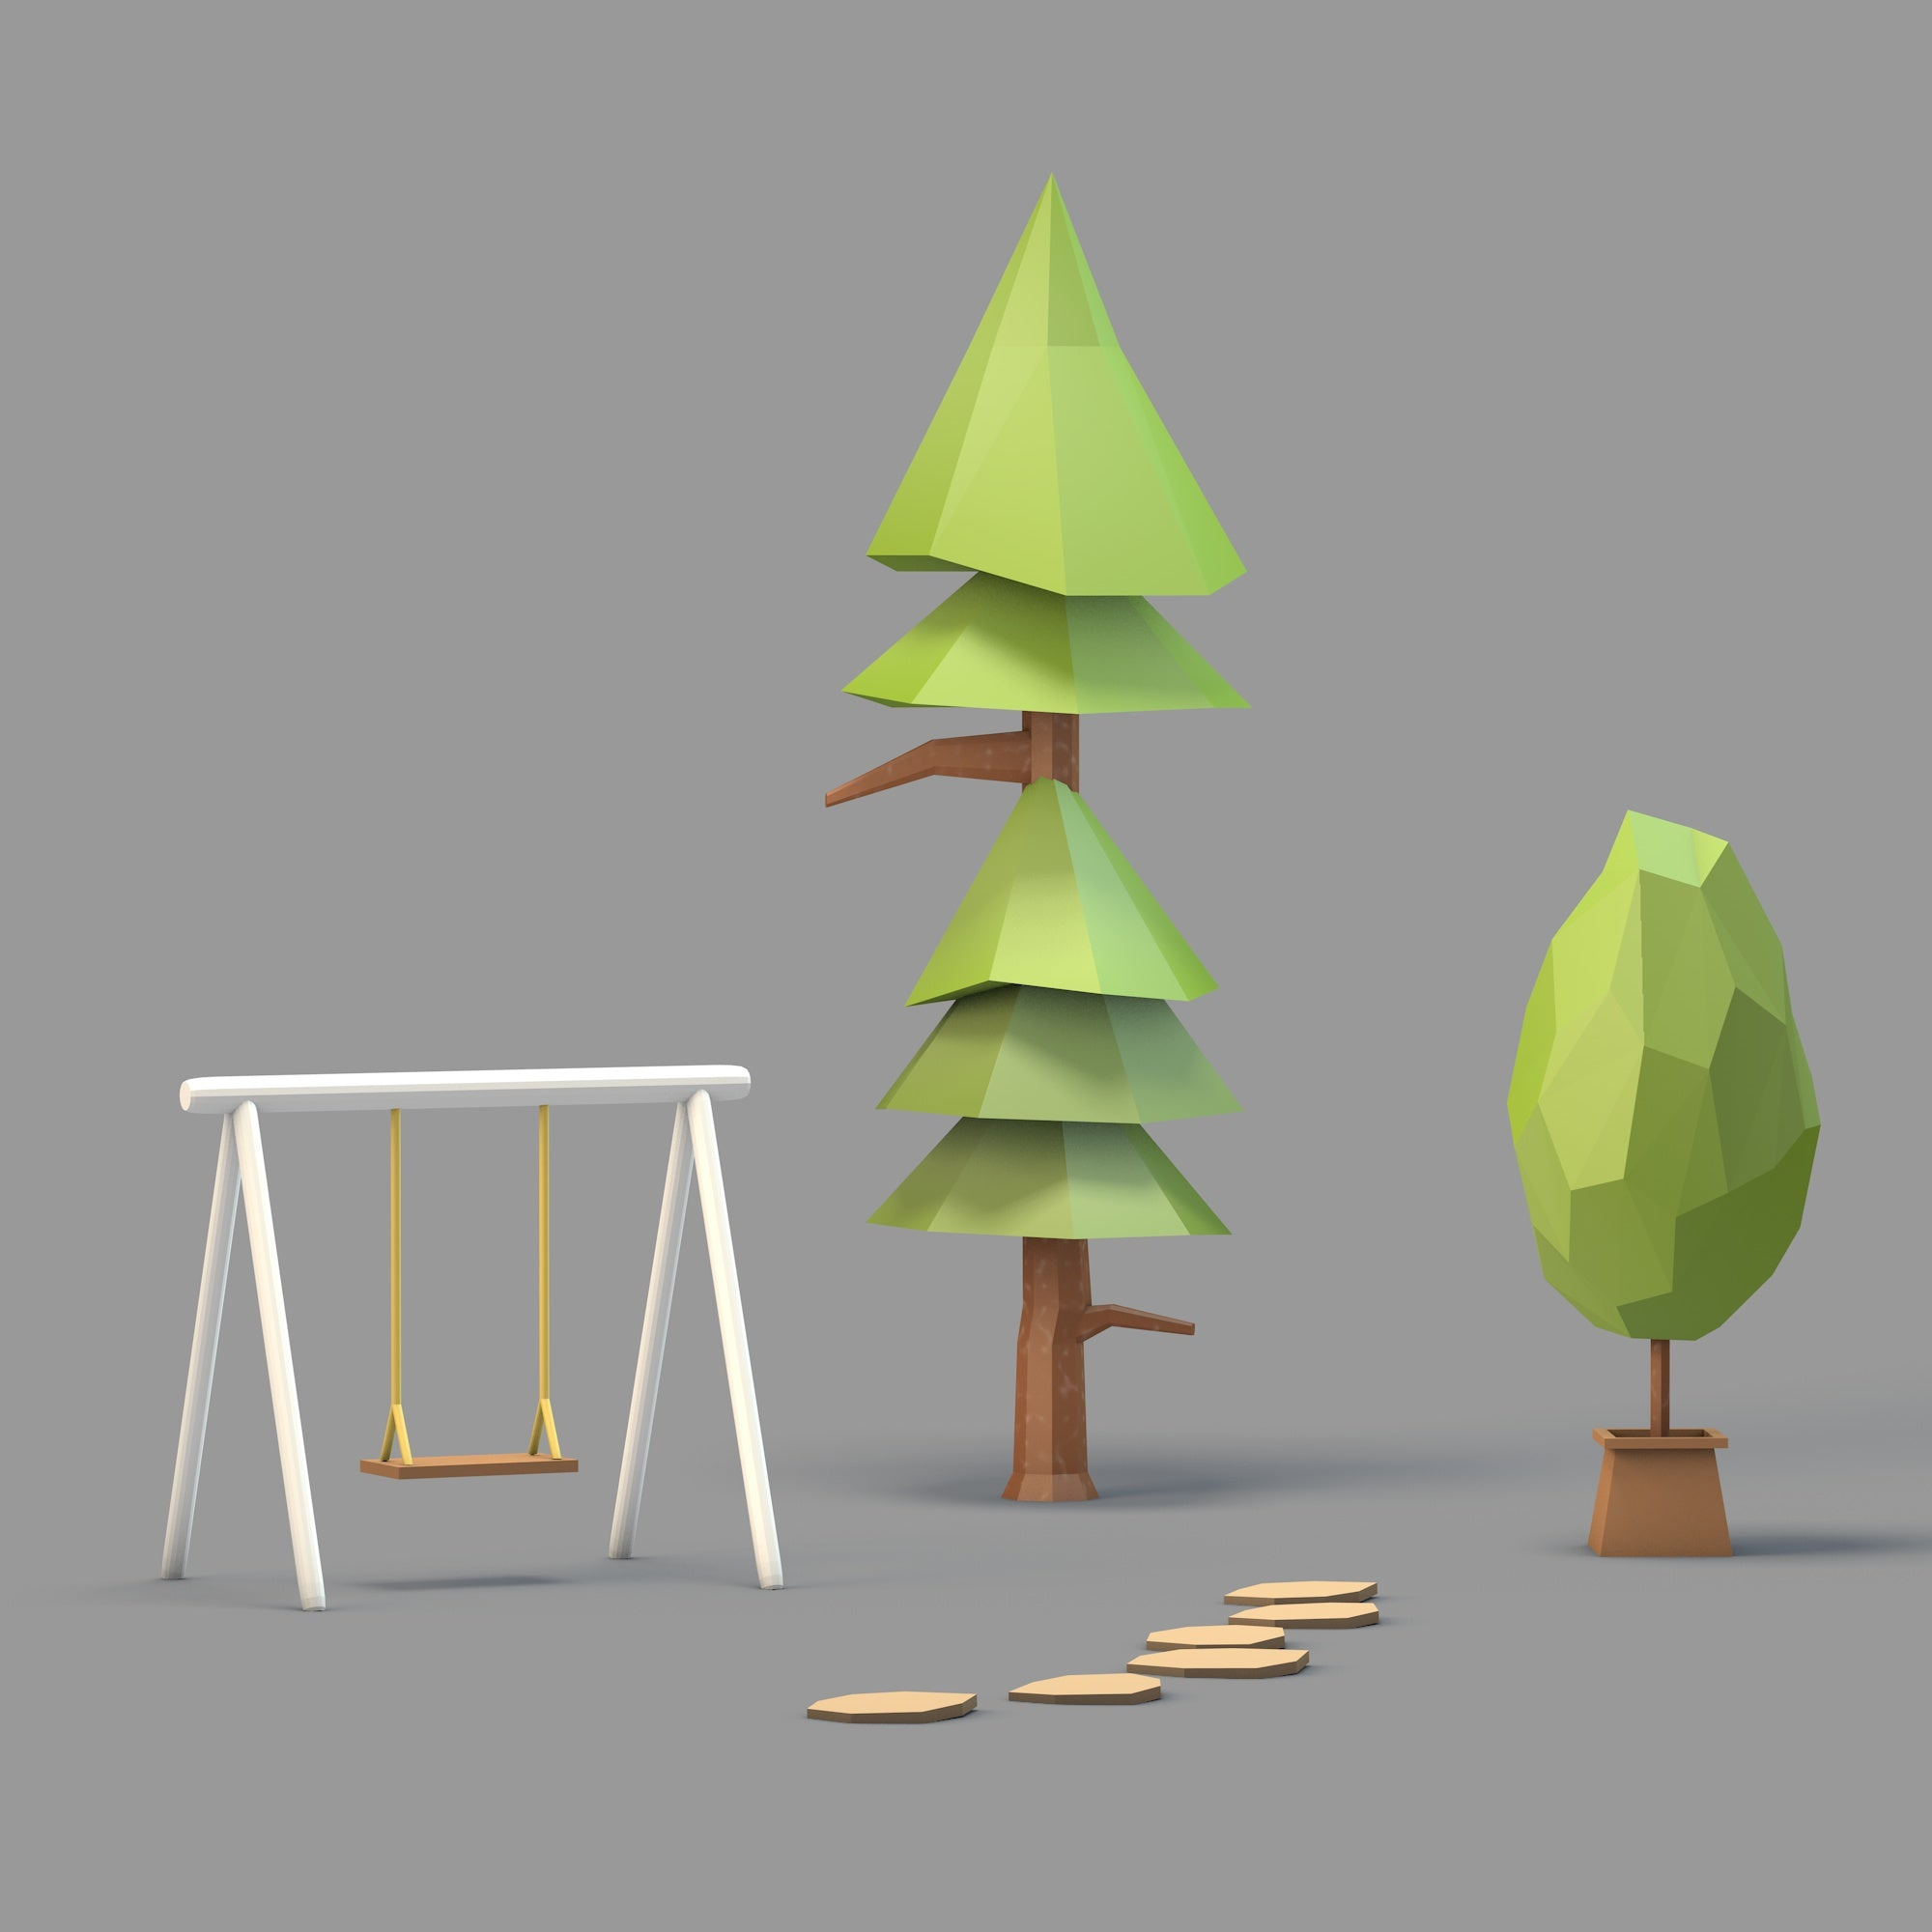 3D Model Low-Poly Home Garden - Toffu Co